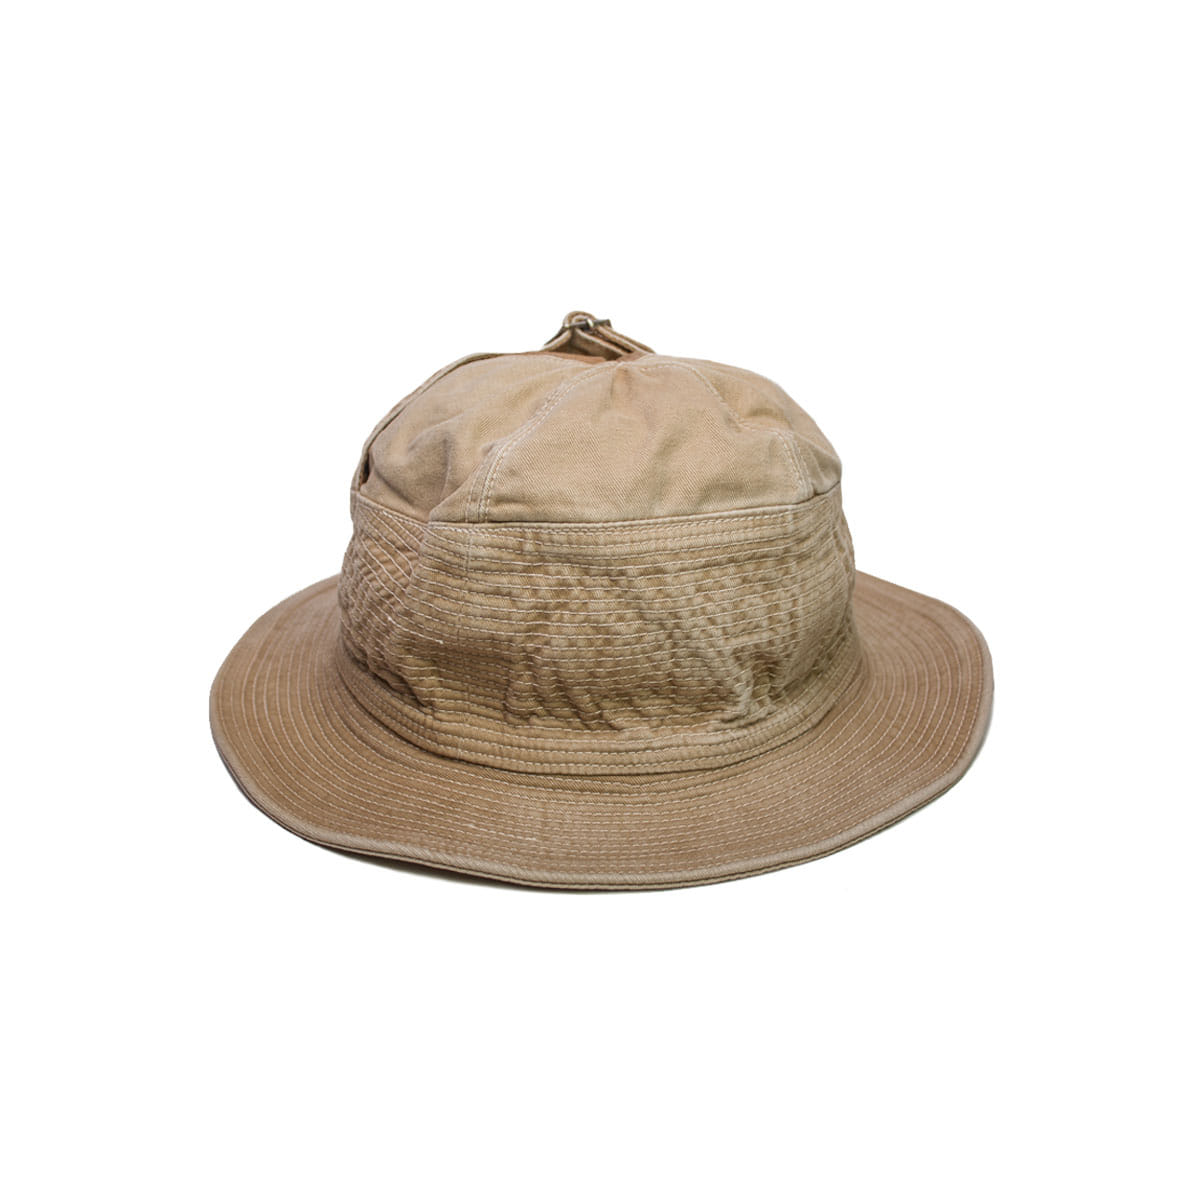 [KAPITAL] THE OLD MAN & SEA HAT 'BEIGE'